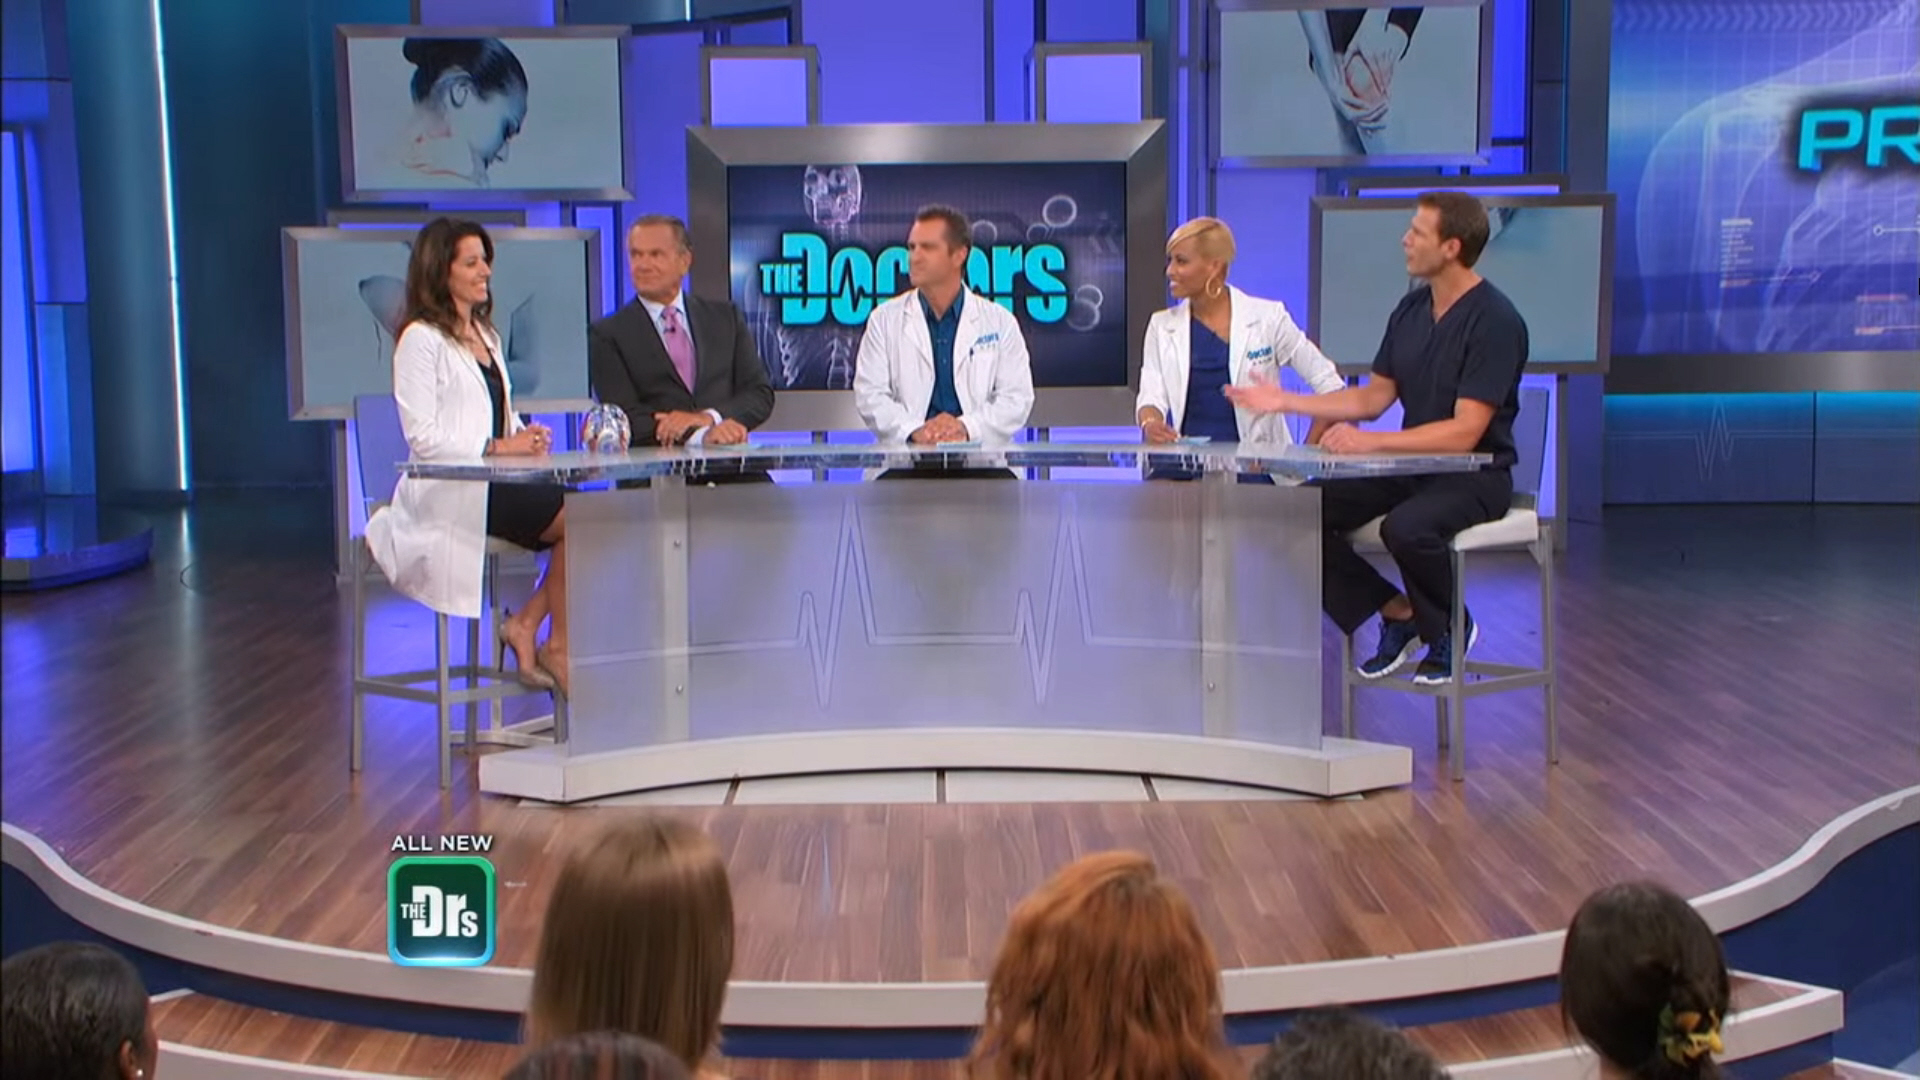 NES miHealth - as seen on The Doctors show.